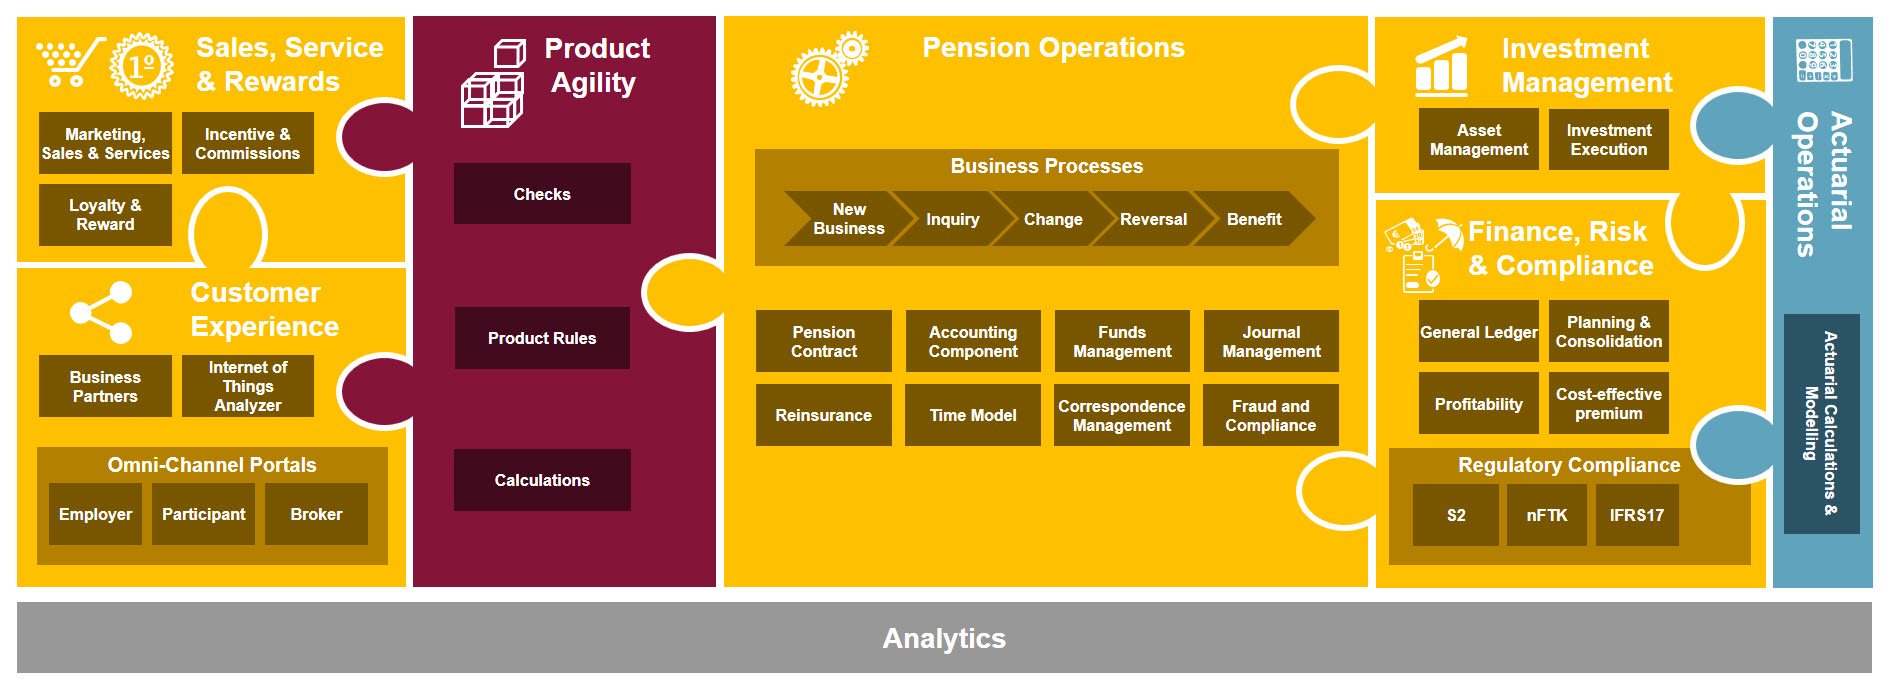 2017 09 20 Pension Based on SAP Platform